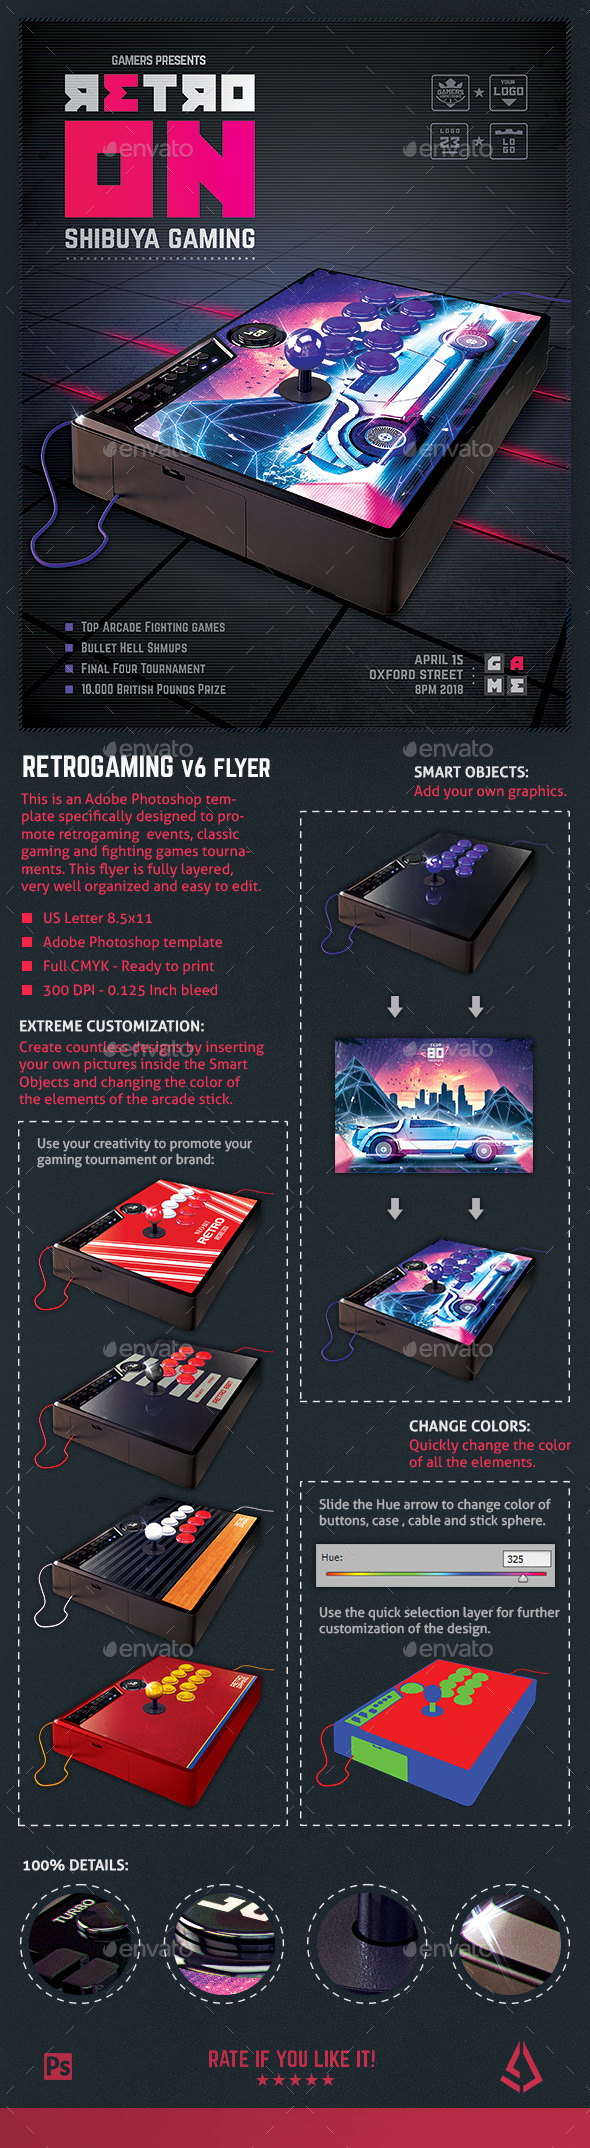 Retro Gaming Flyer v6 - Arcade Stick Mockup Template - Miscellaneous Events